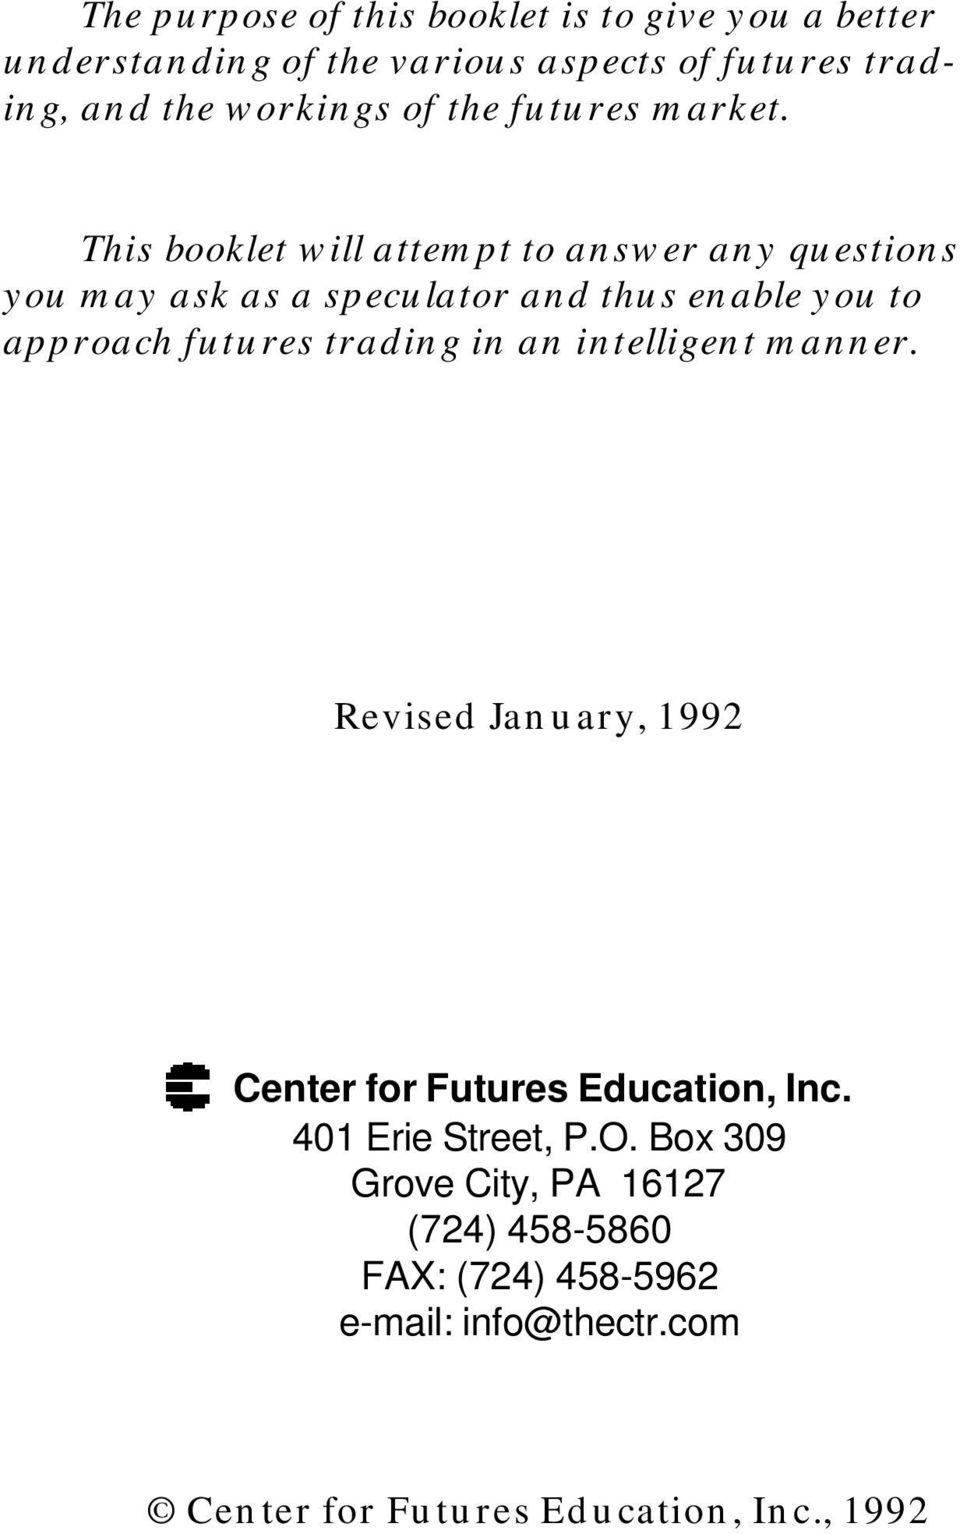 This booklet will attempt to answer any questions you may ask as a speculator and thus enable you to approach futures trading